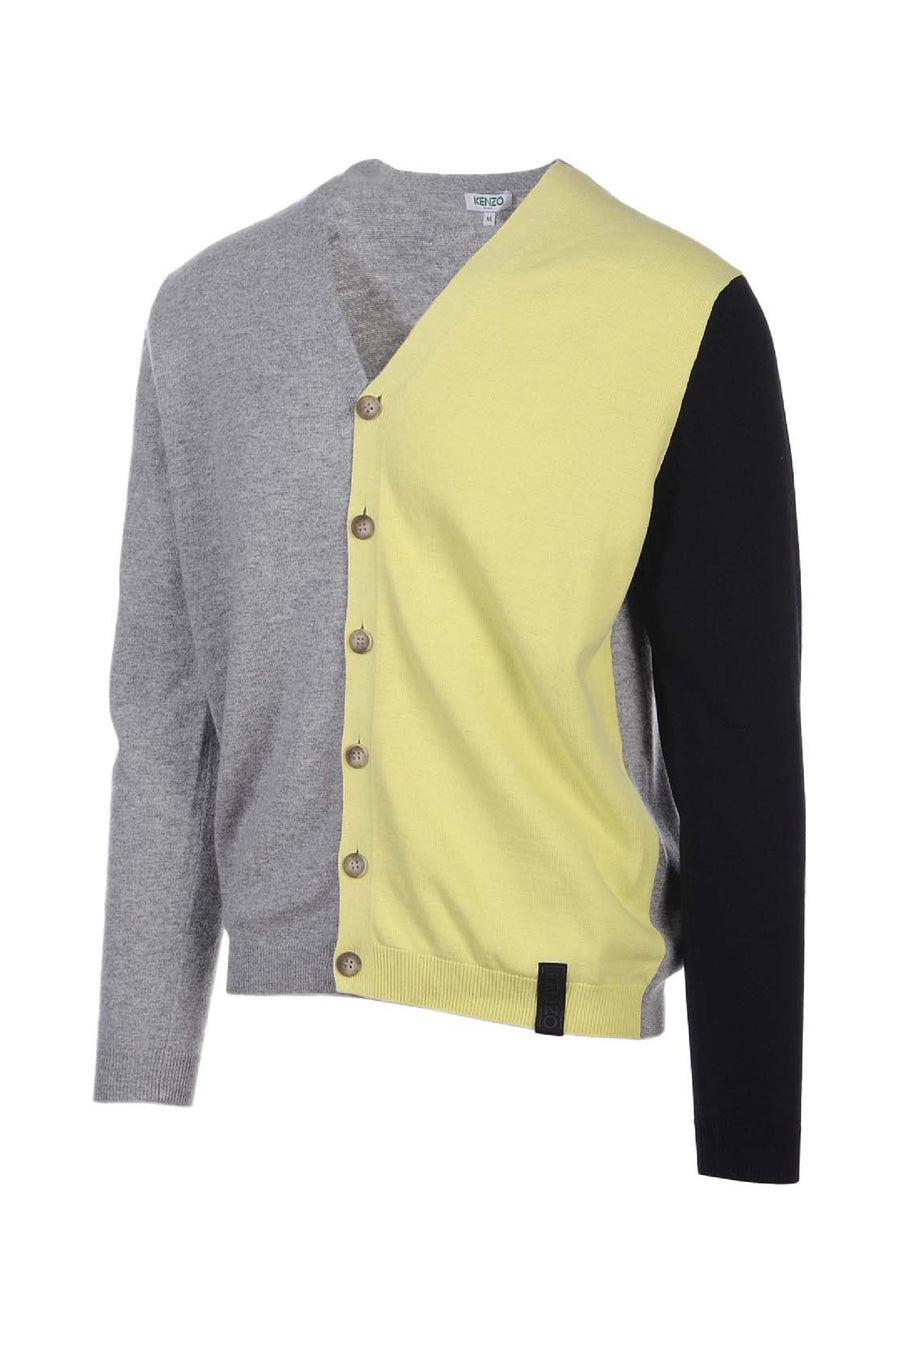 Colorblock Cardigan Paris Kenzo Designer Basic Casual Fashion Menswear